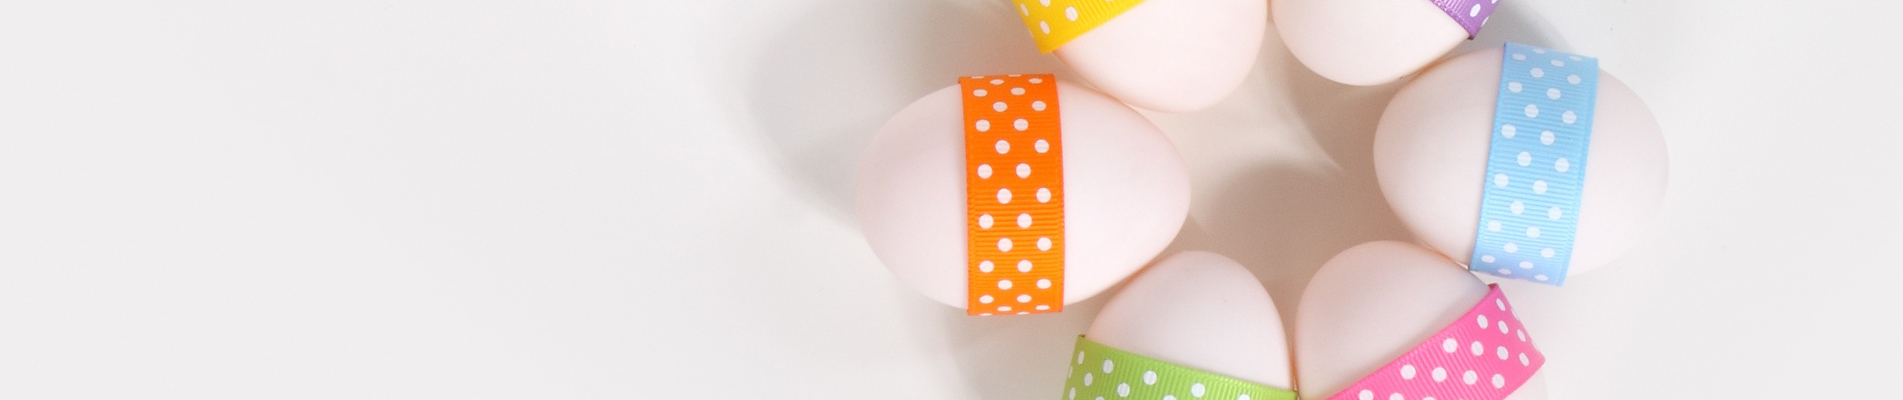 Egg-tastic Easter marketing campaigns